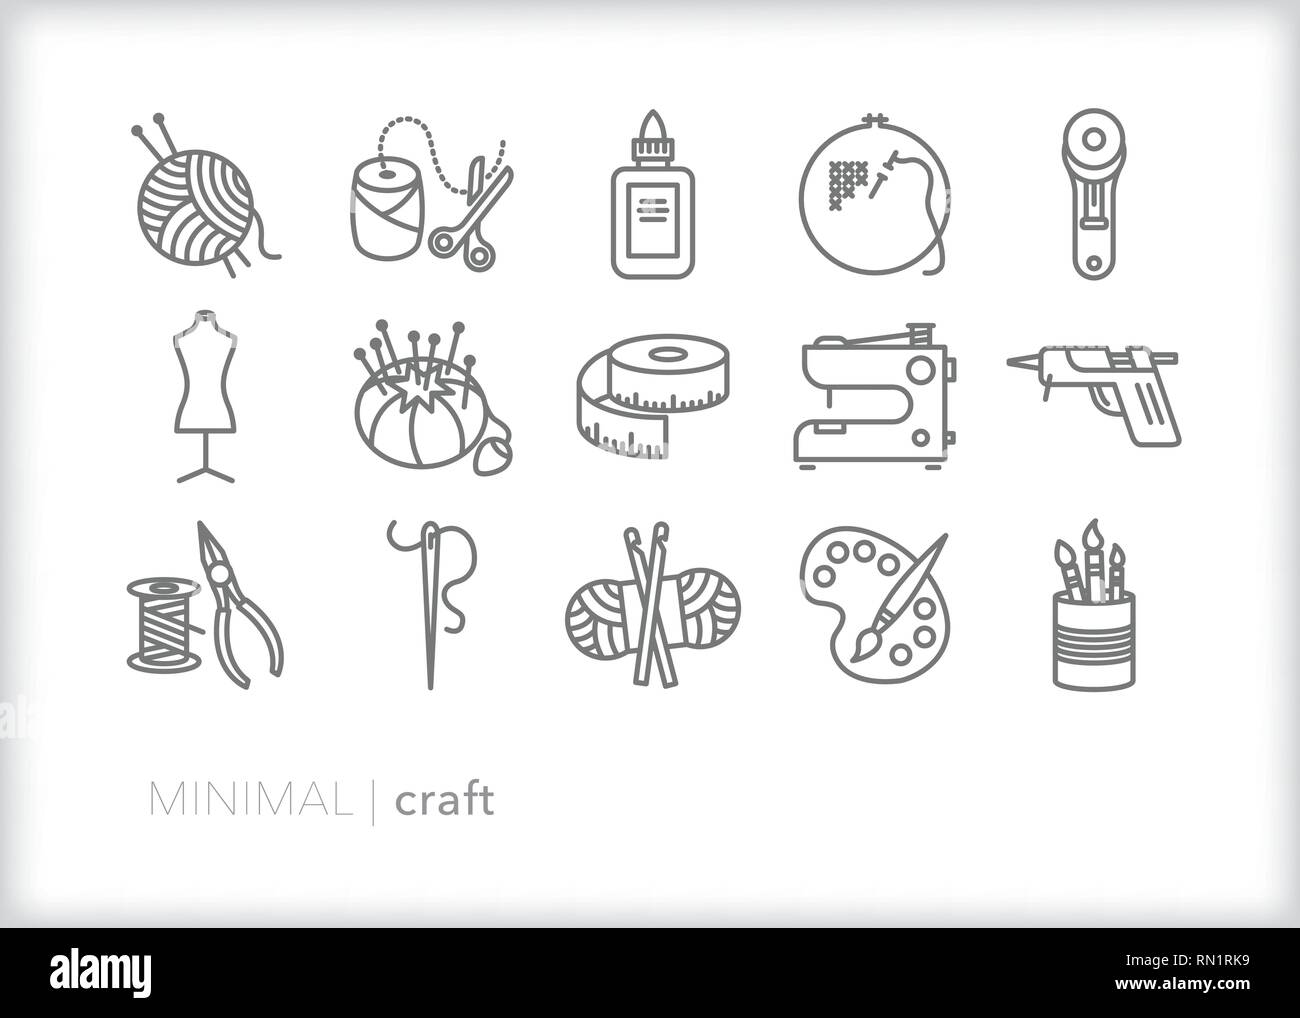 Set of 15 gray craft line icons of objects from craft hobbies such as crochet, knitting, painting, sewing and DIY projects - Stock Vector